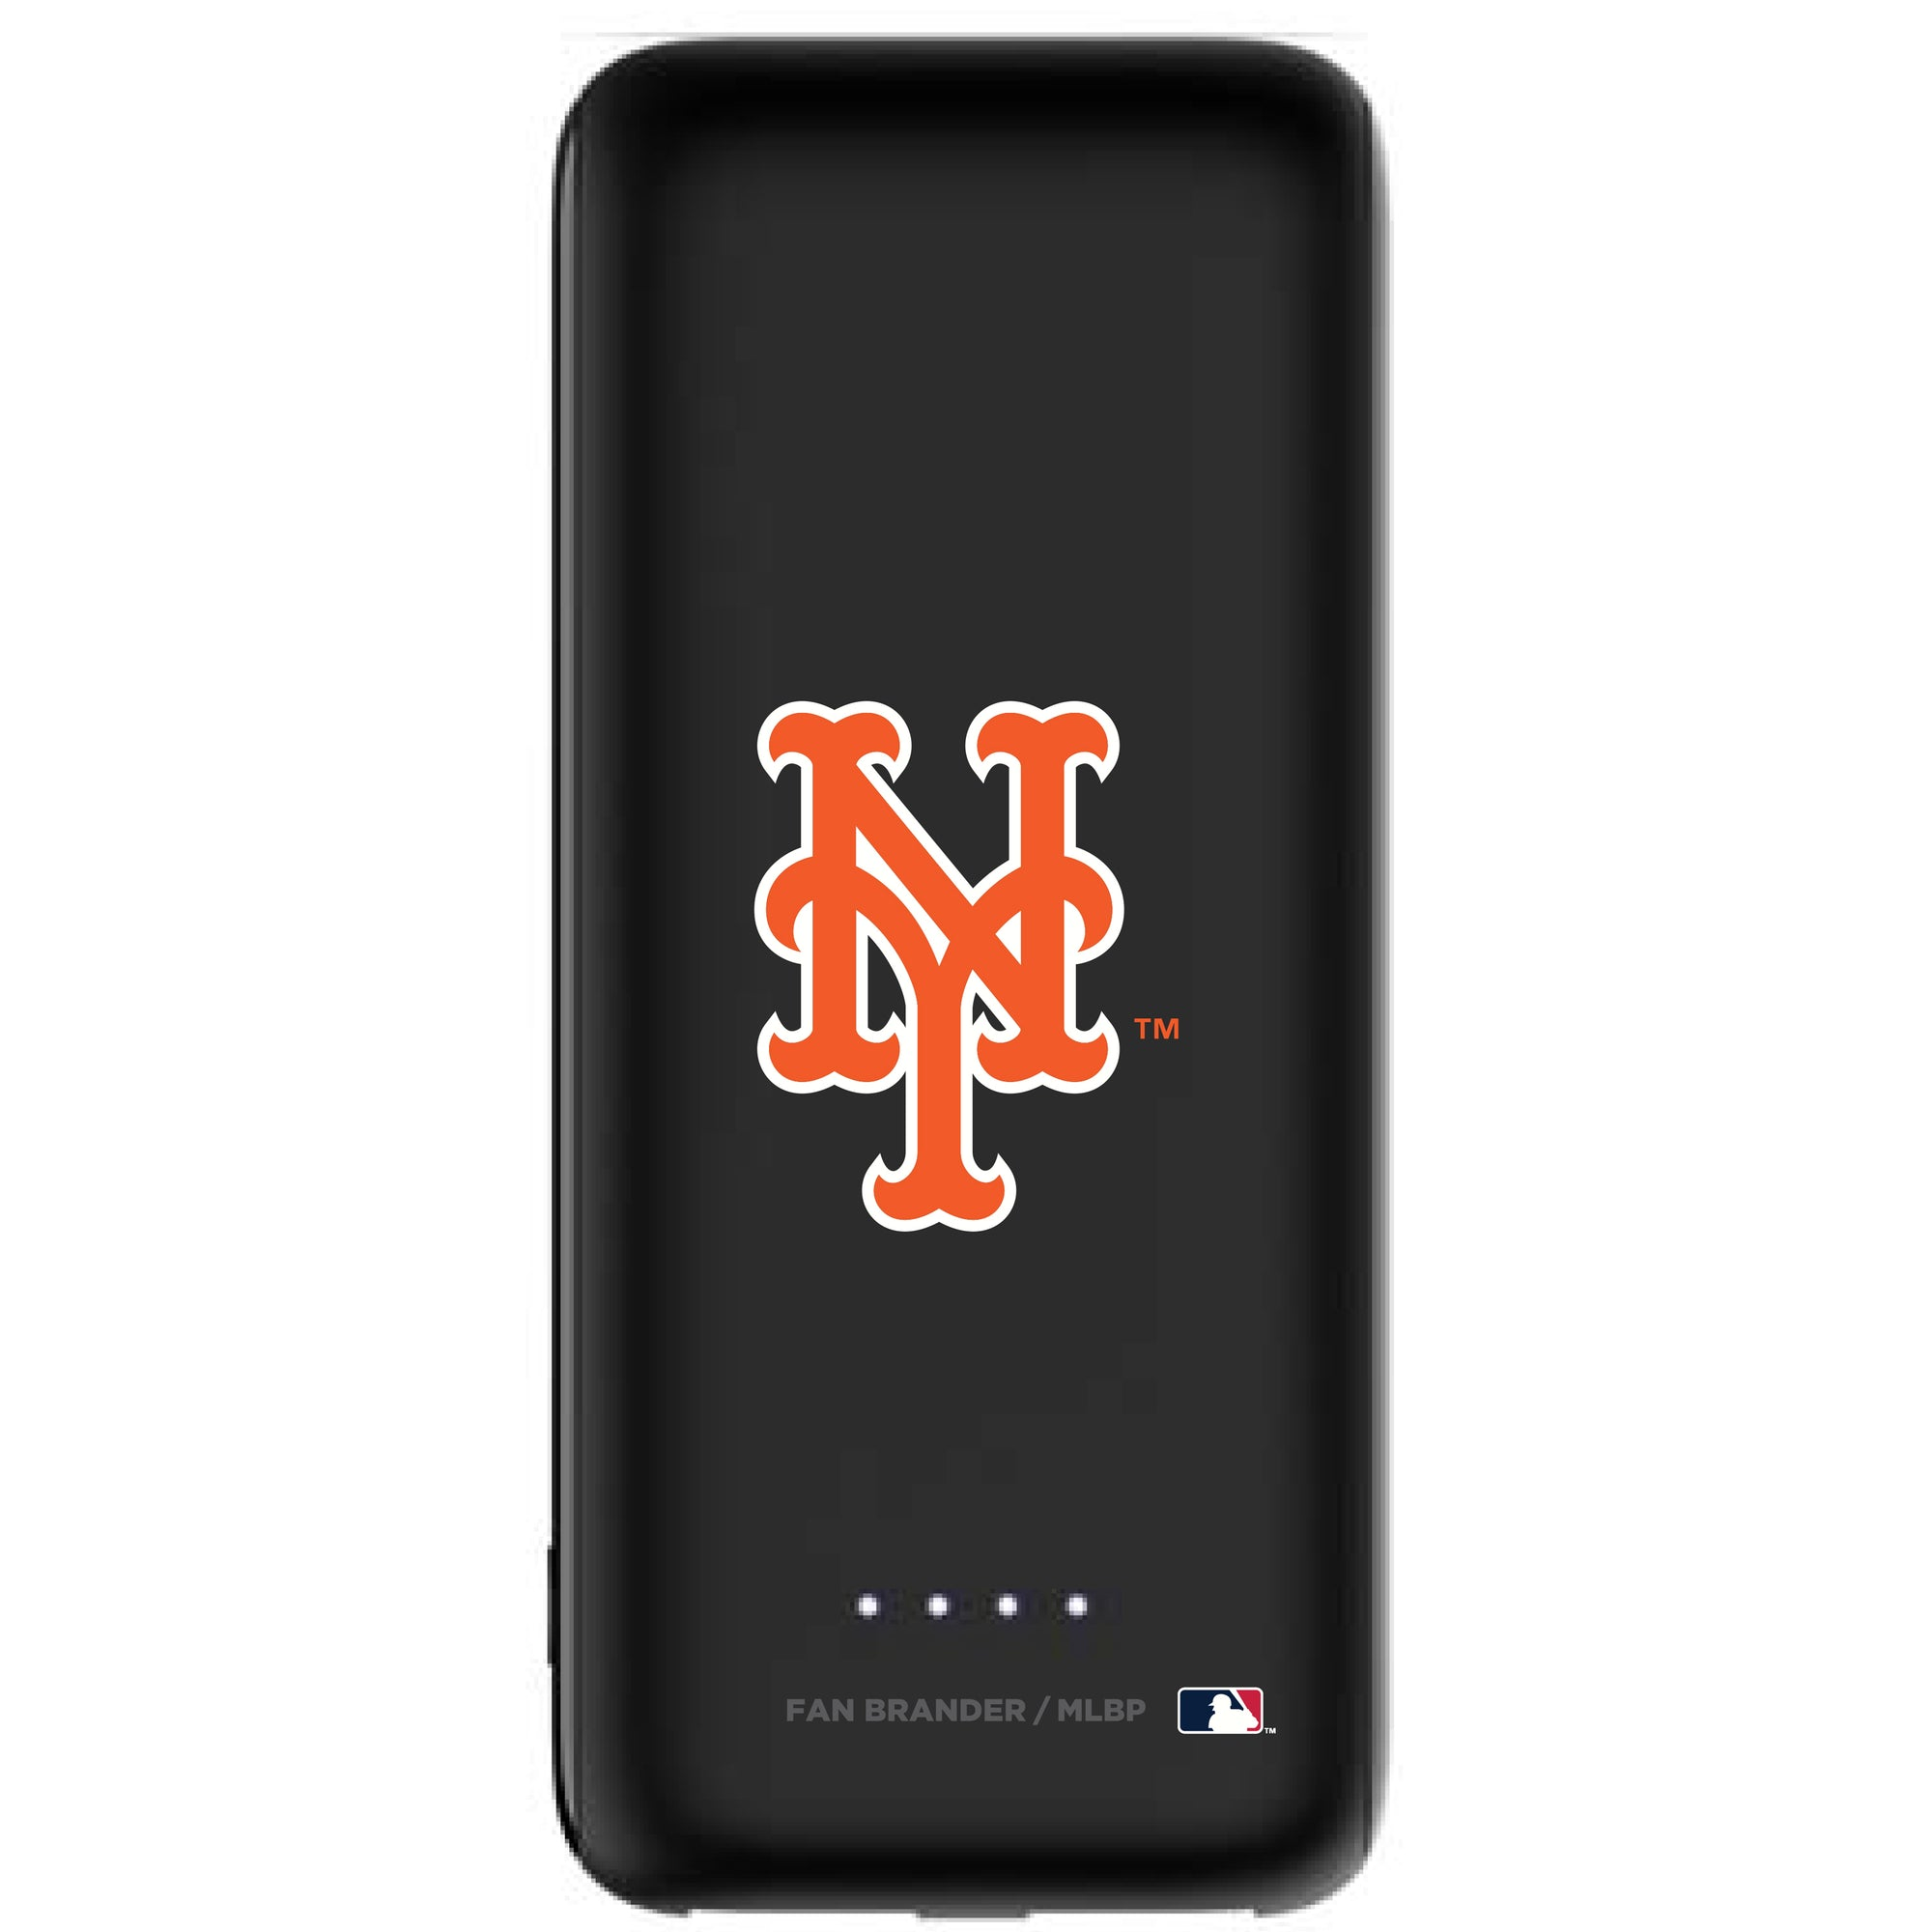 New York Mets Power Boost Mini 5,200 mAH